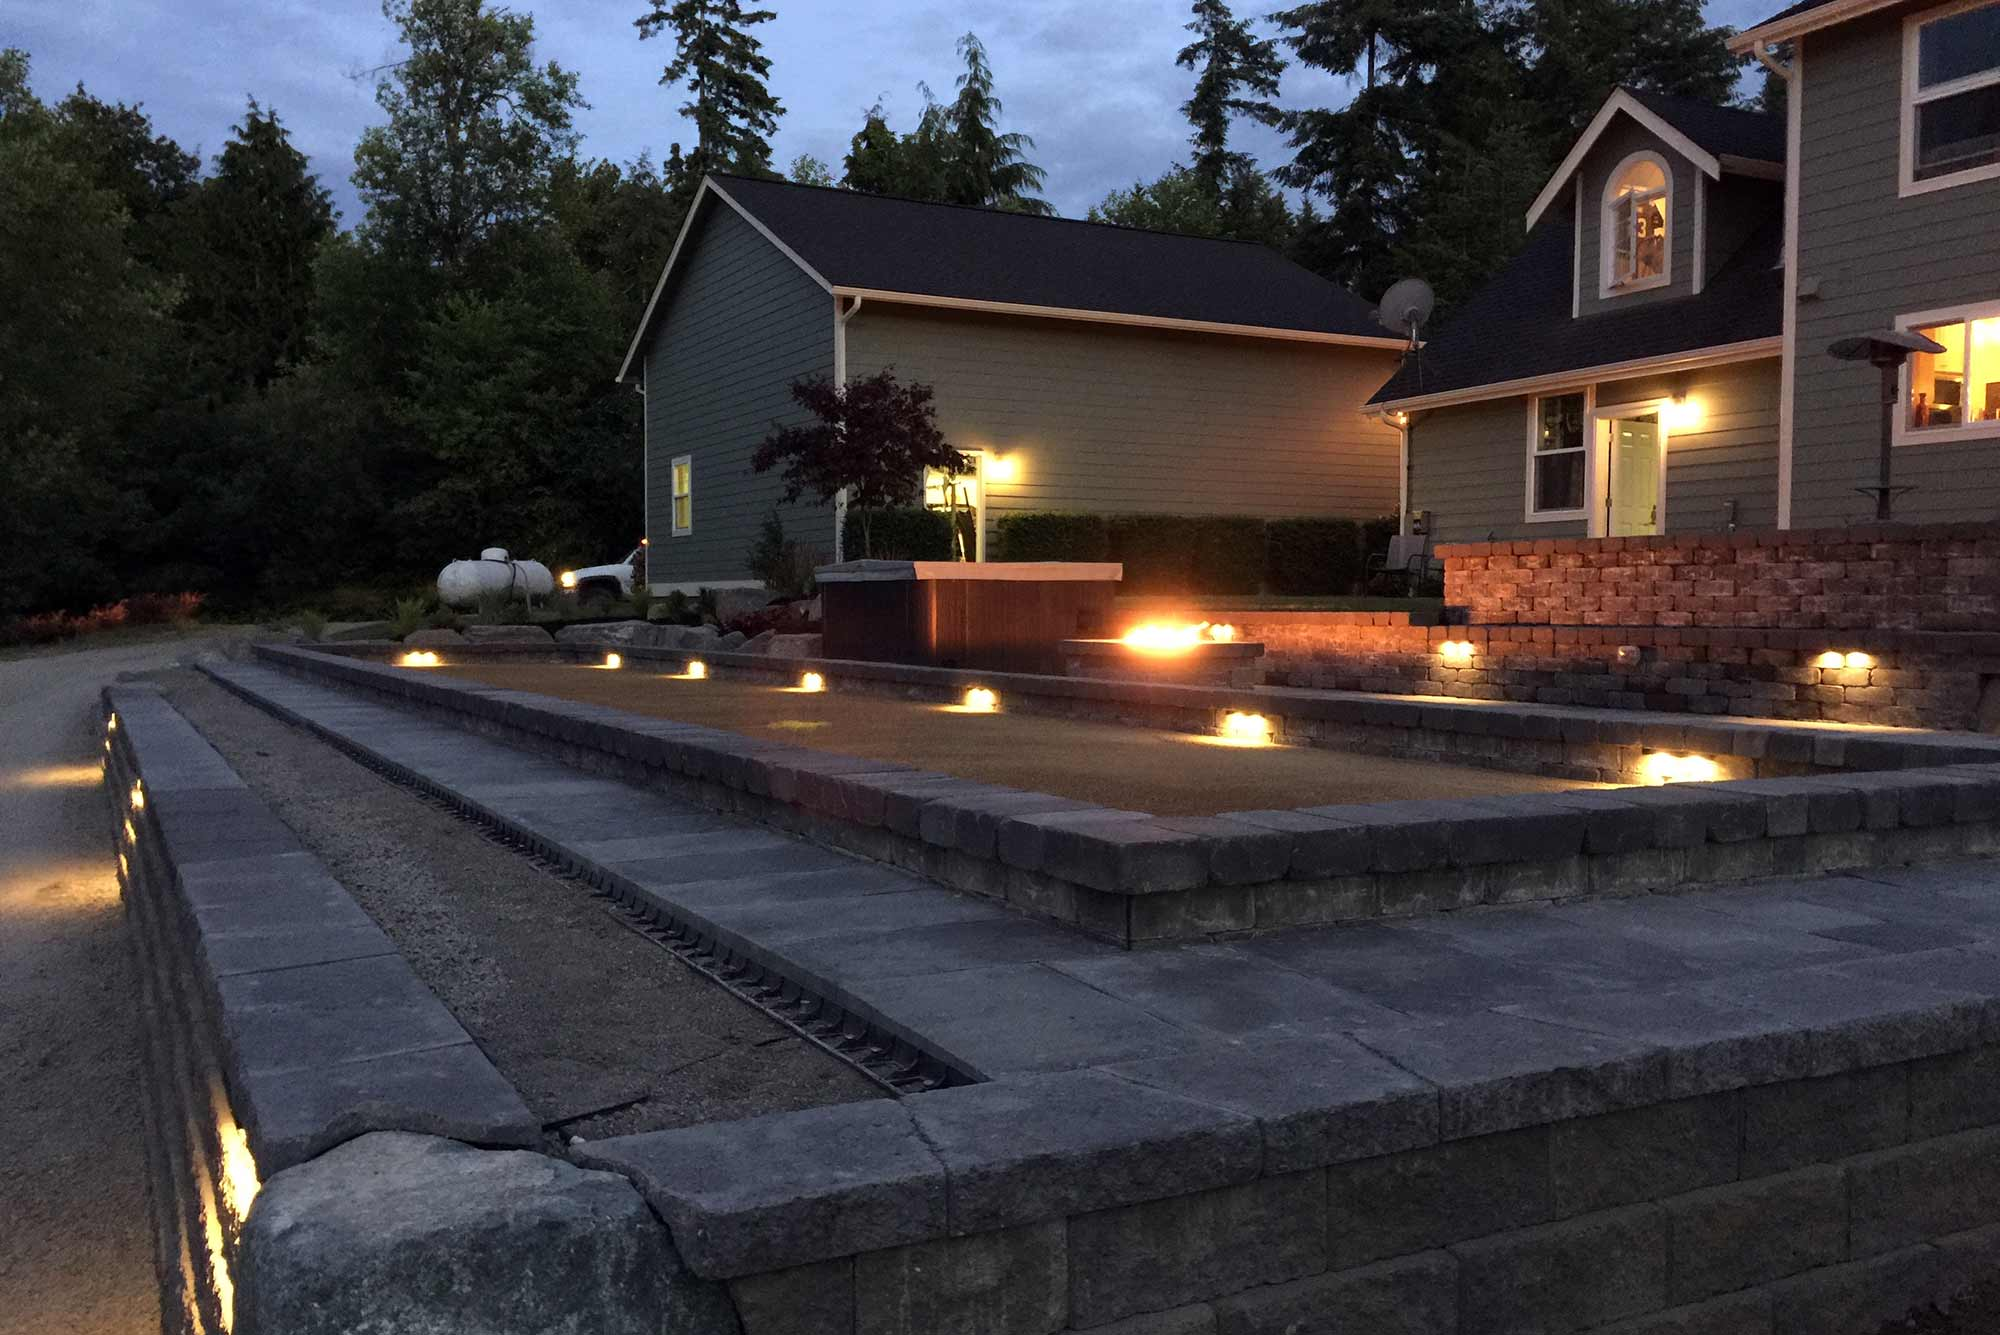 Olympia bocce ball court with night lighting